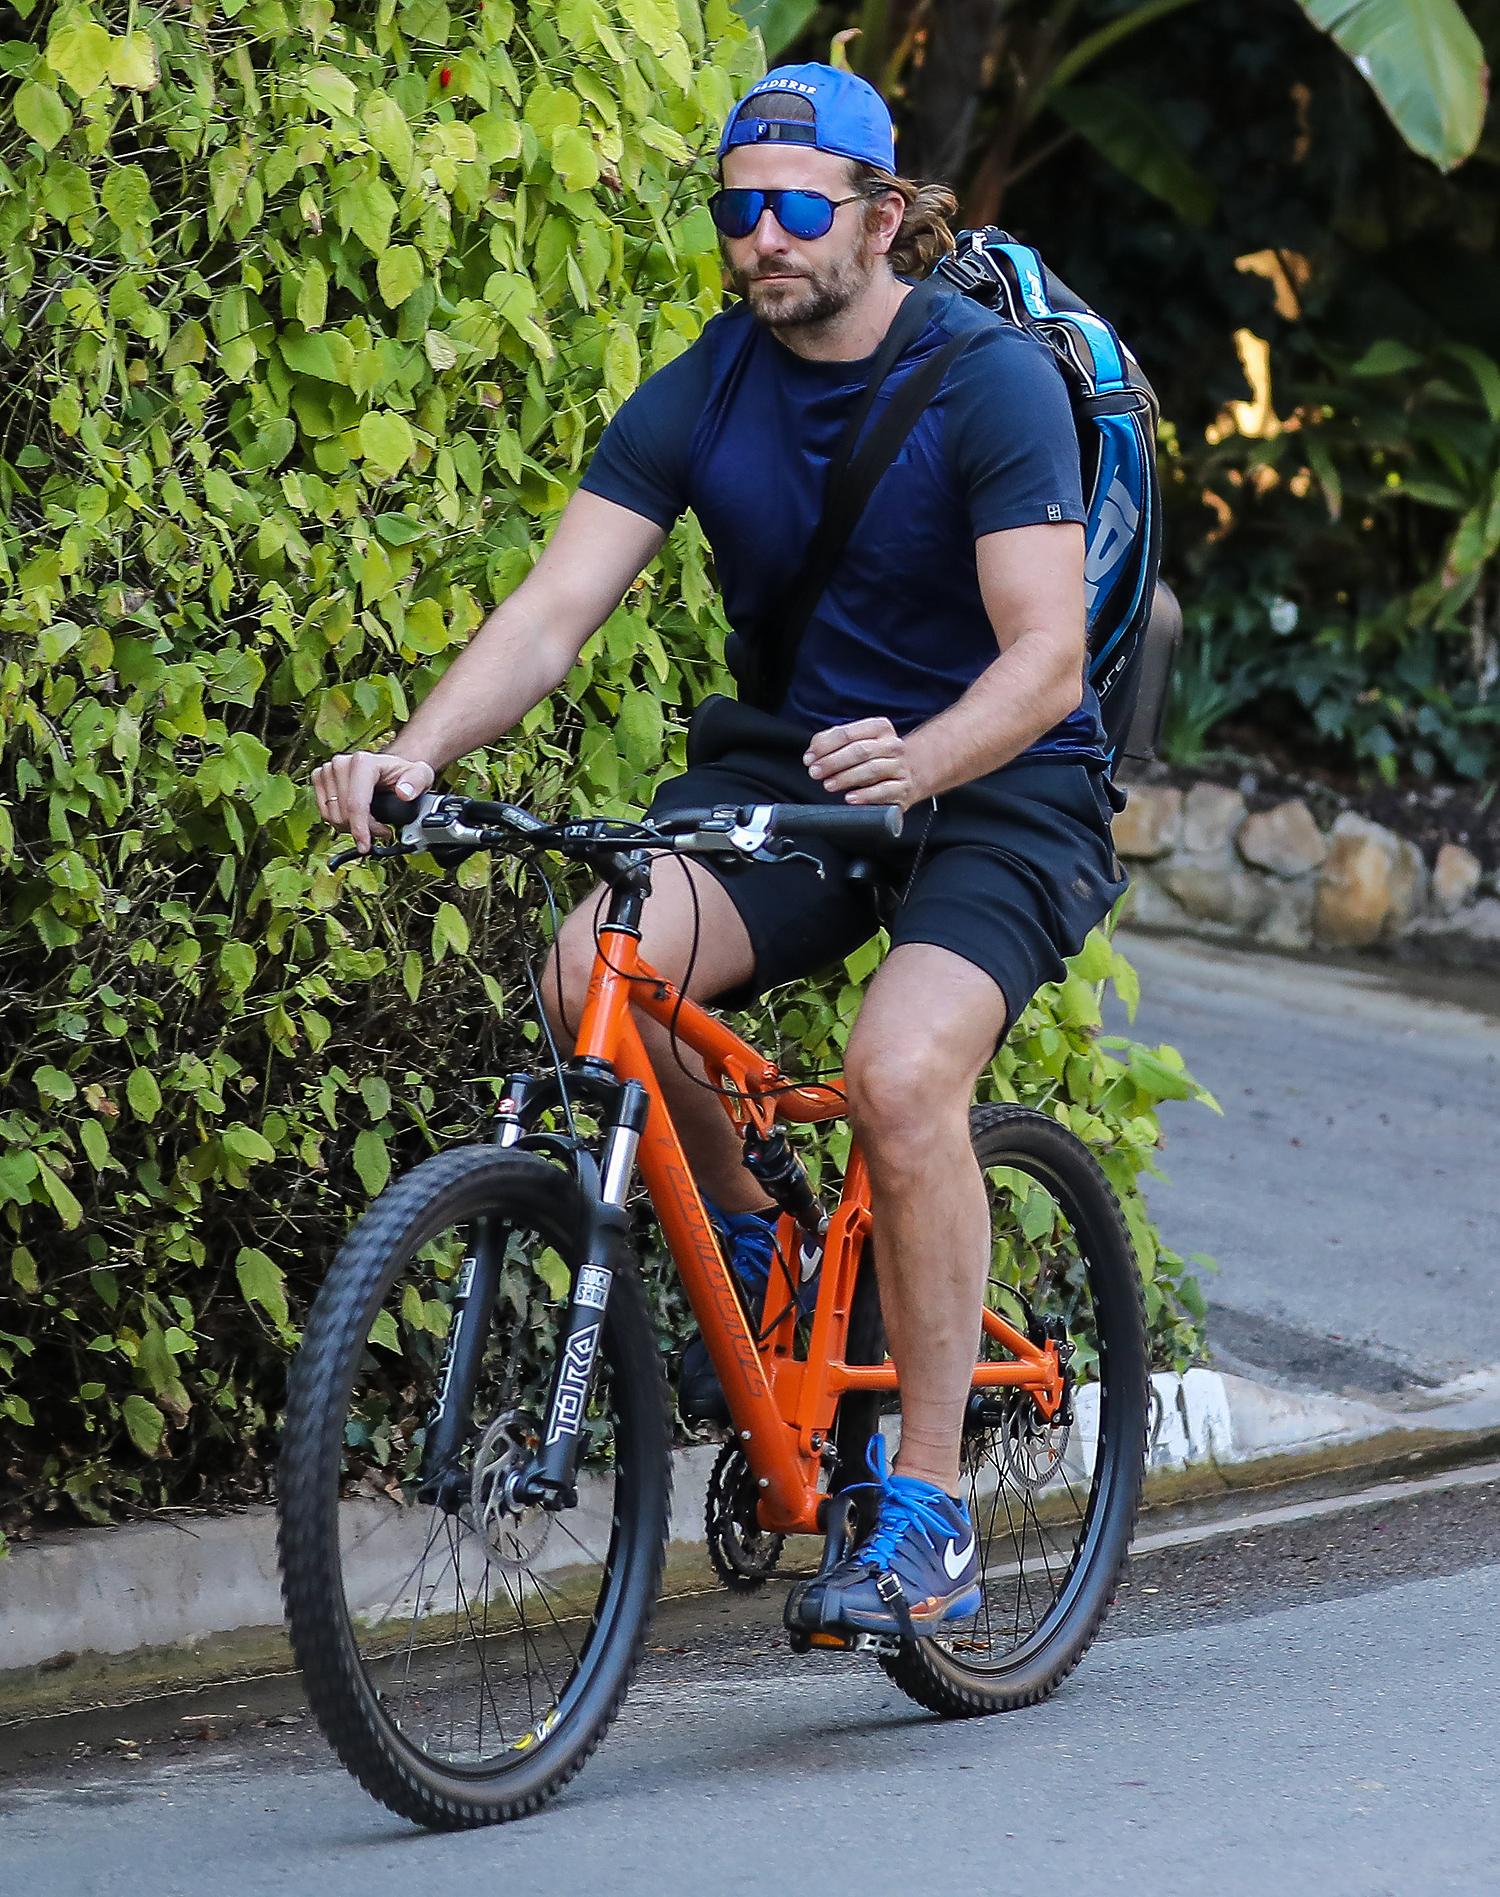 *EXCLUSIVE* Bradley Cooper gets his daily dose of exercise with a bike ride